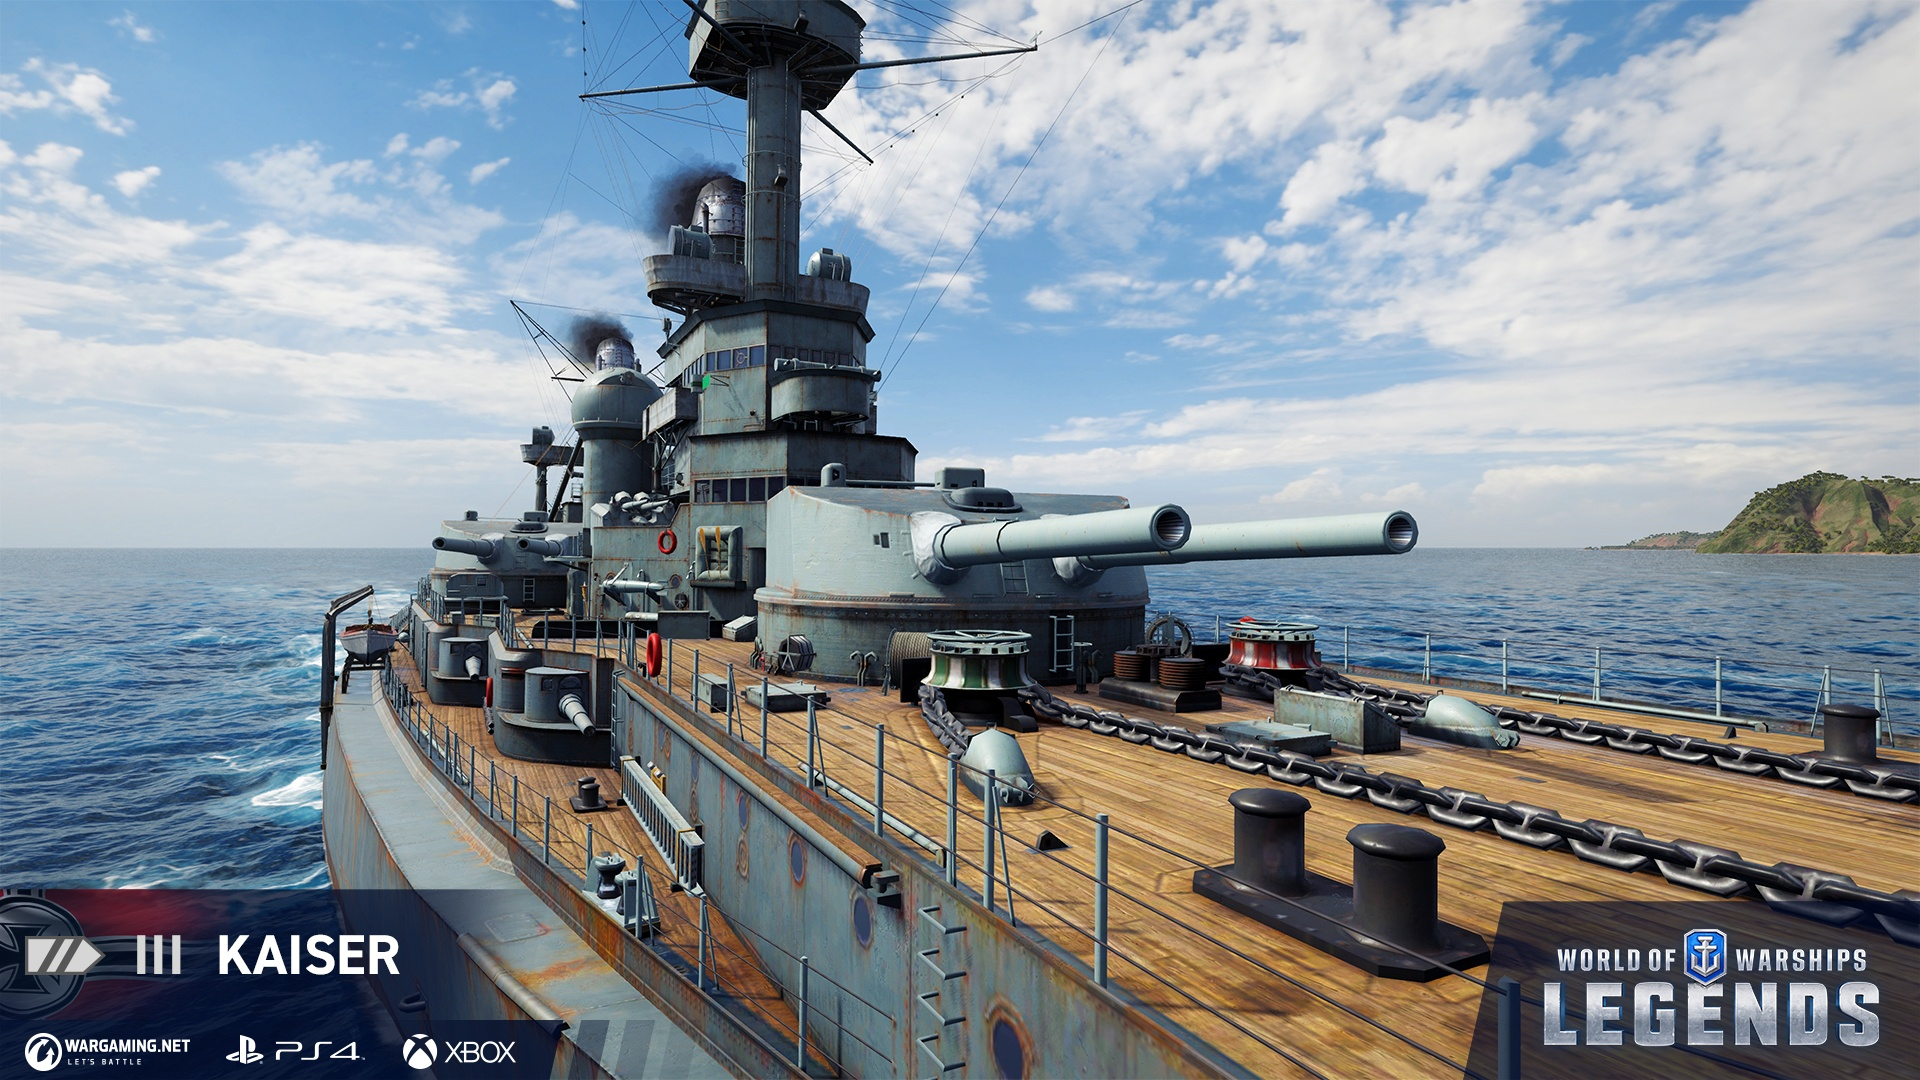 World of Warships: Legends is now available to all on PS4